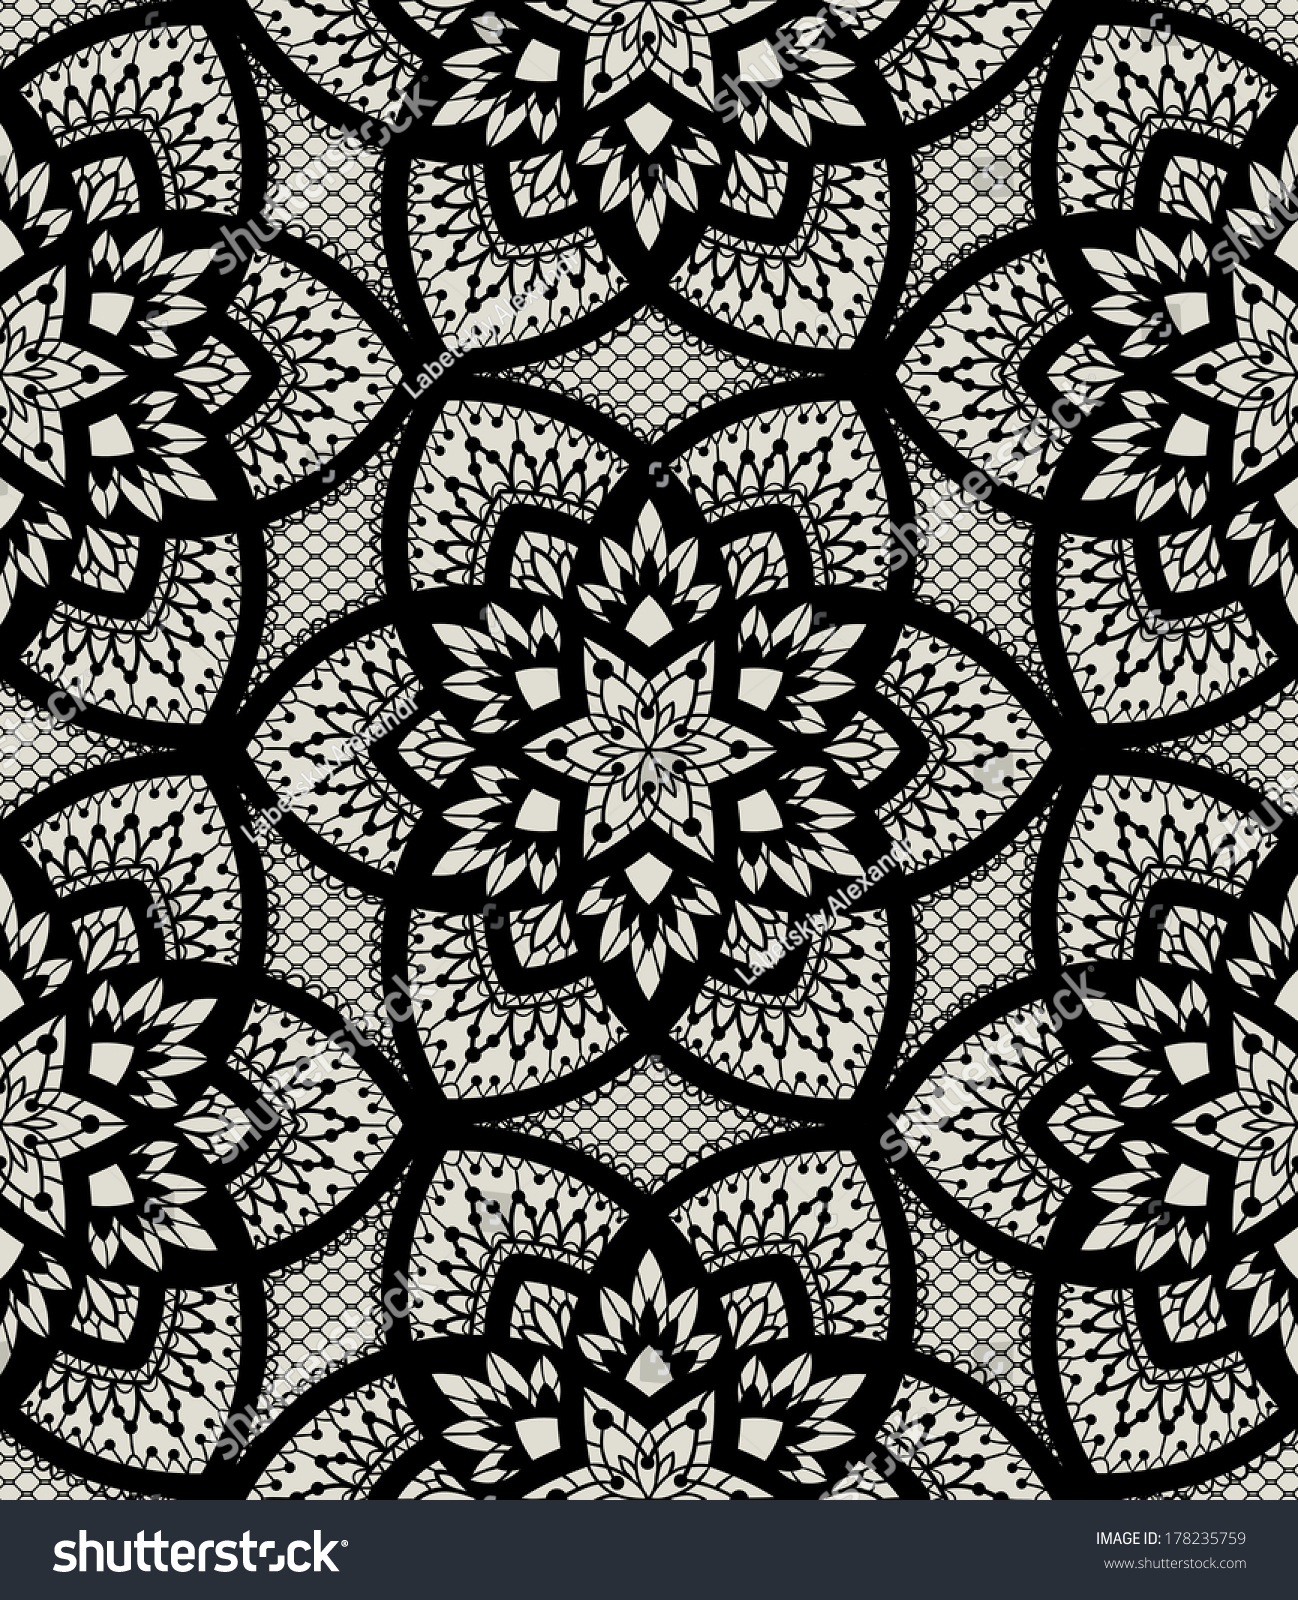 Temporary Fabric Wallpaper Seamless Background Vector Ornament Fashionable Modern